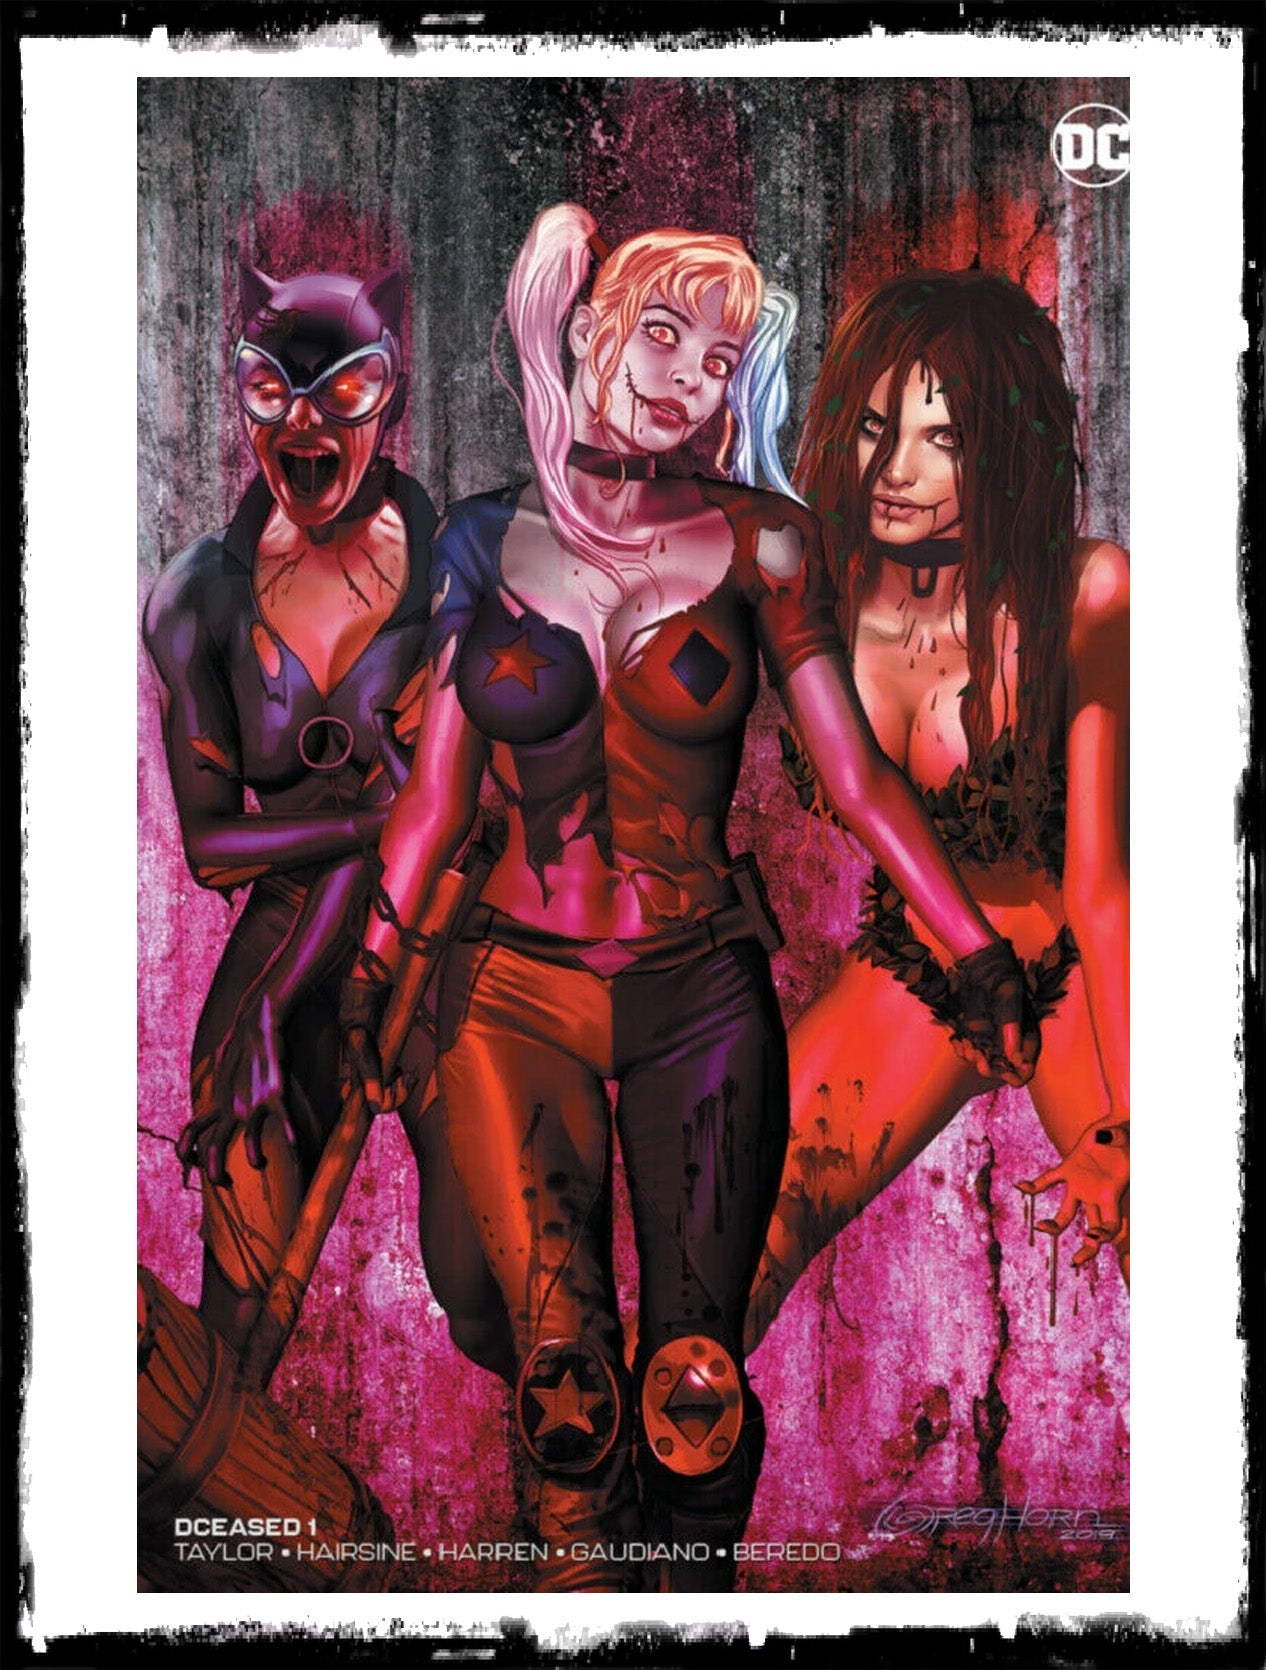 DCEASED - #1 GREG HORN ZOMBIFIED BLOOD RED MINIMAL VARIANT / 1500 PRINT RUN (2019 - NM)